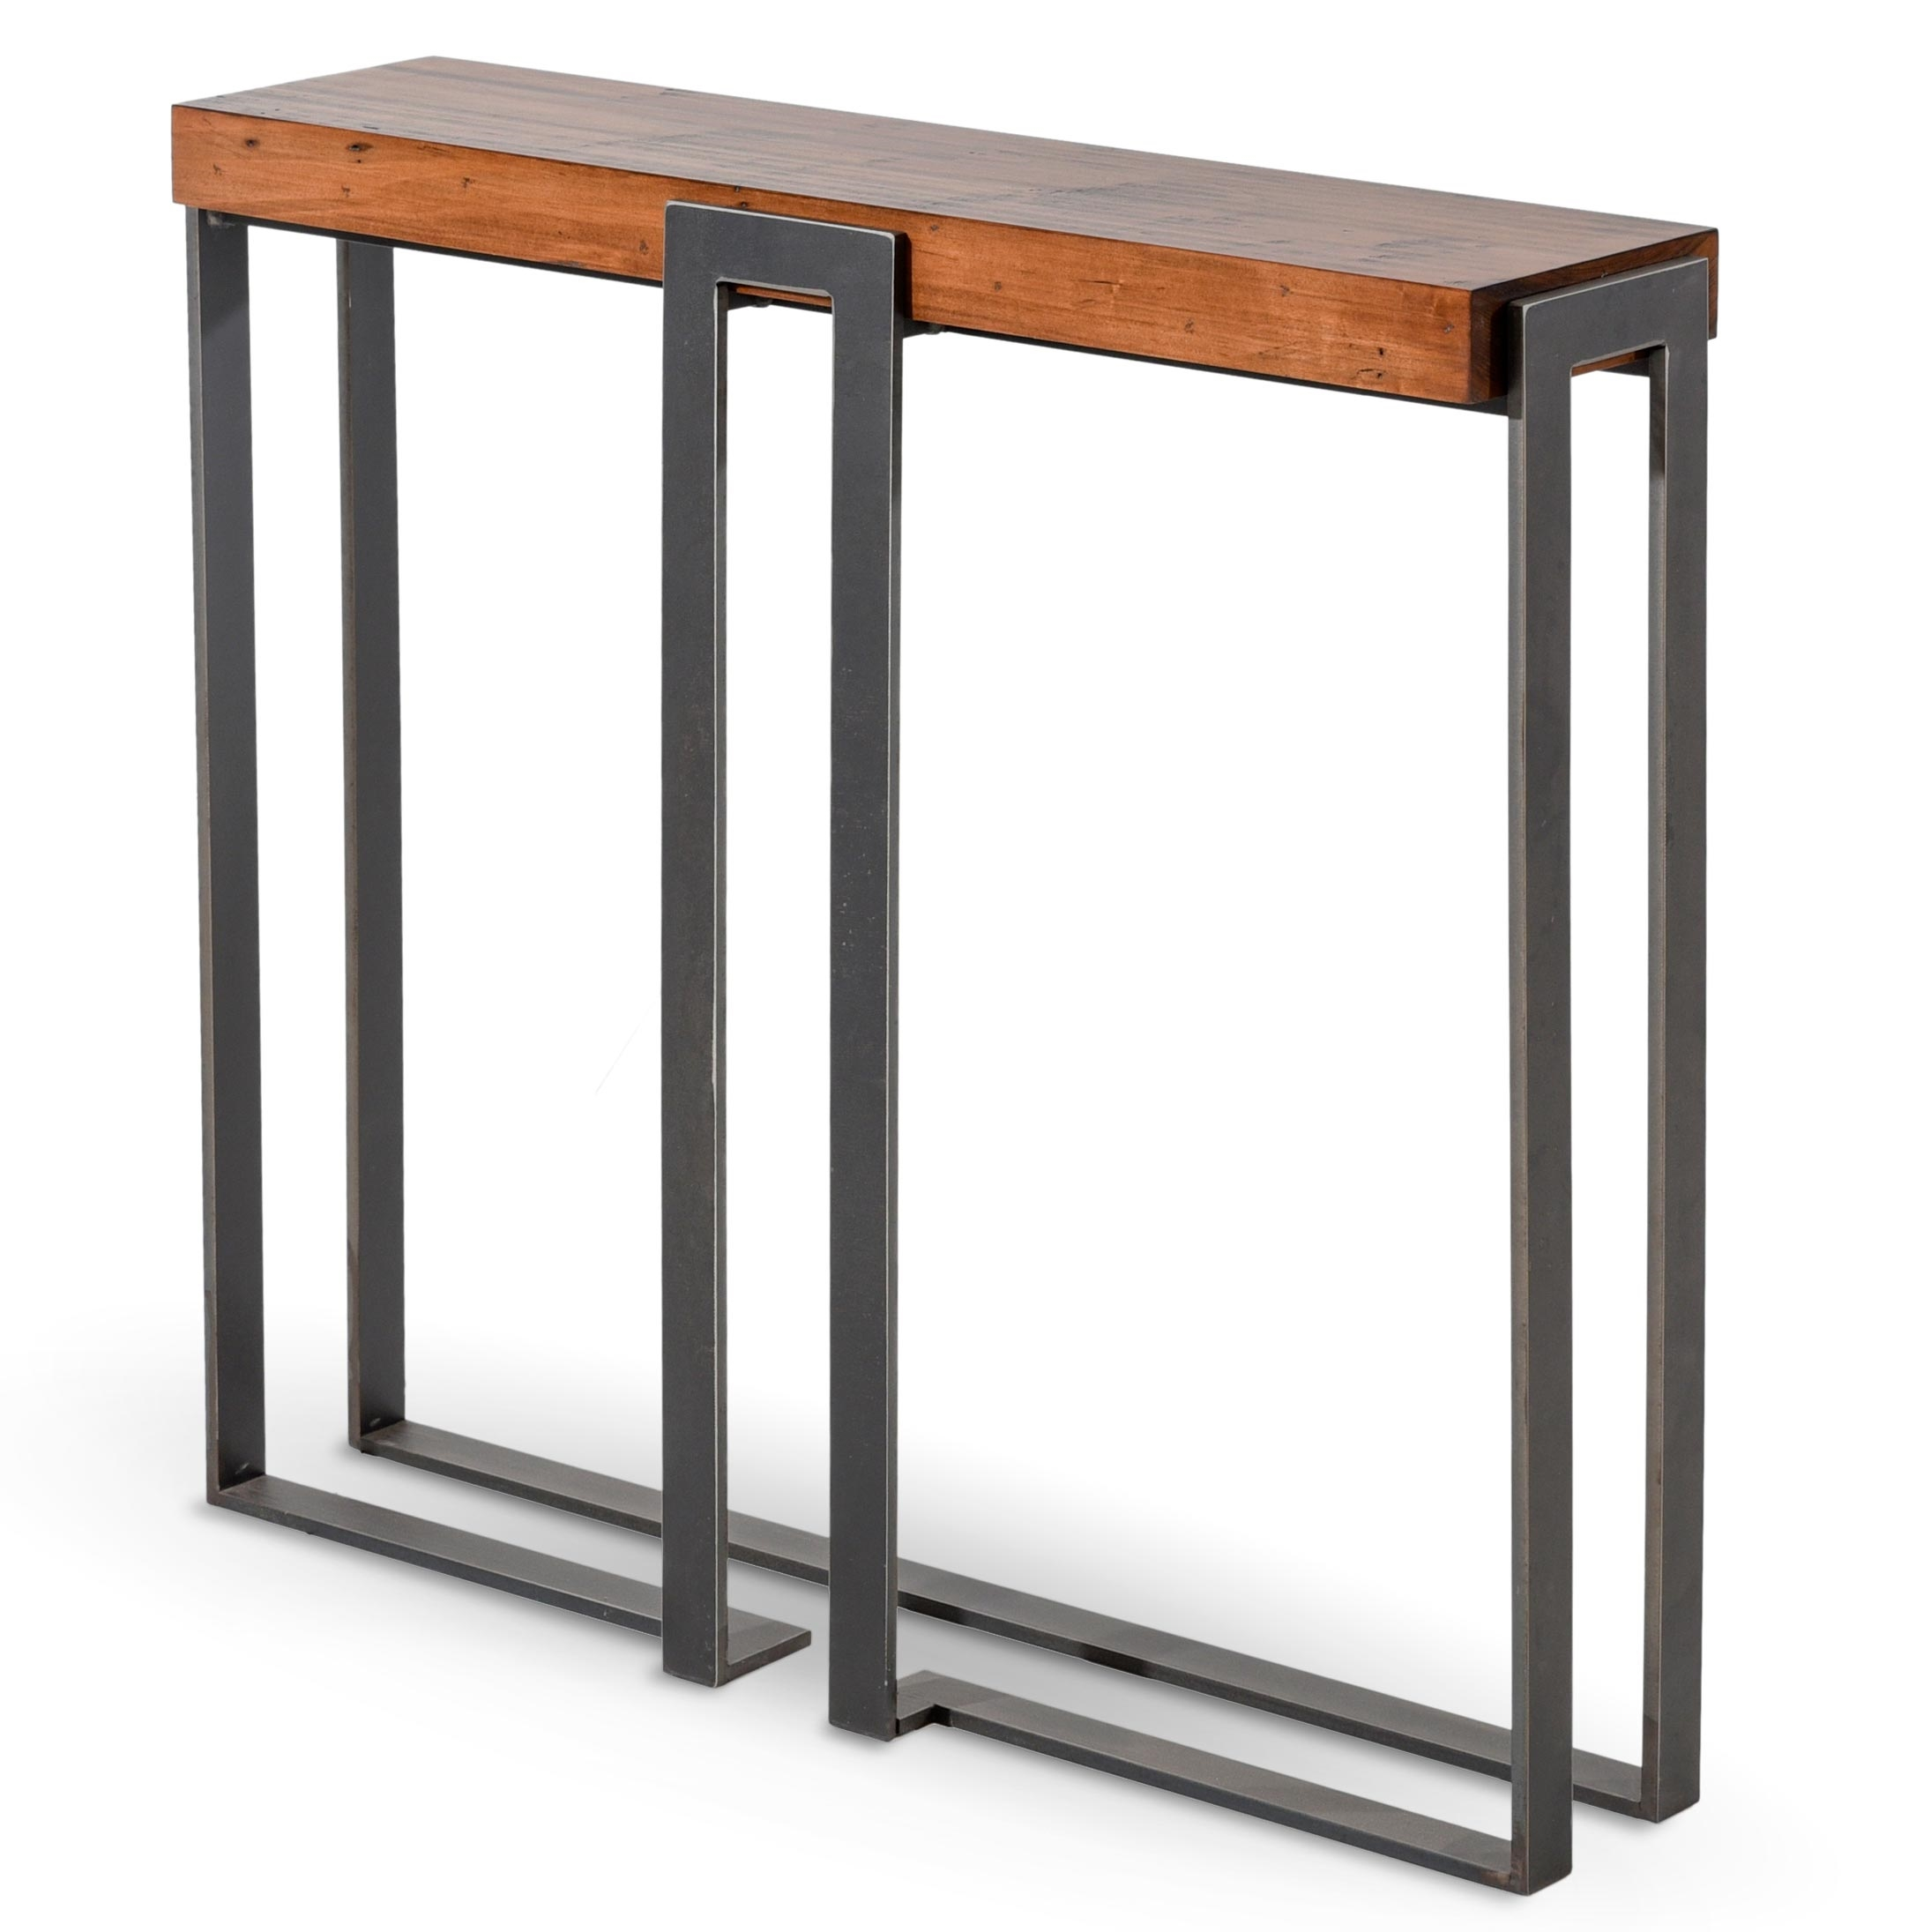 Astounding Watson 34 In Console Table By Charleston Forge Pabps2019 Chair Design Images Pabps2019Com